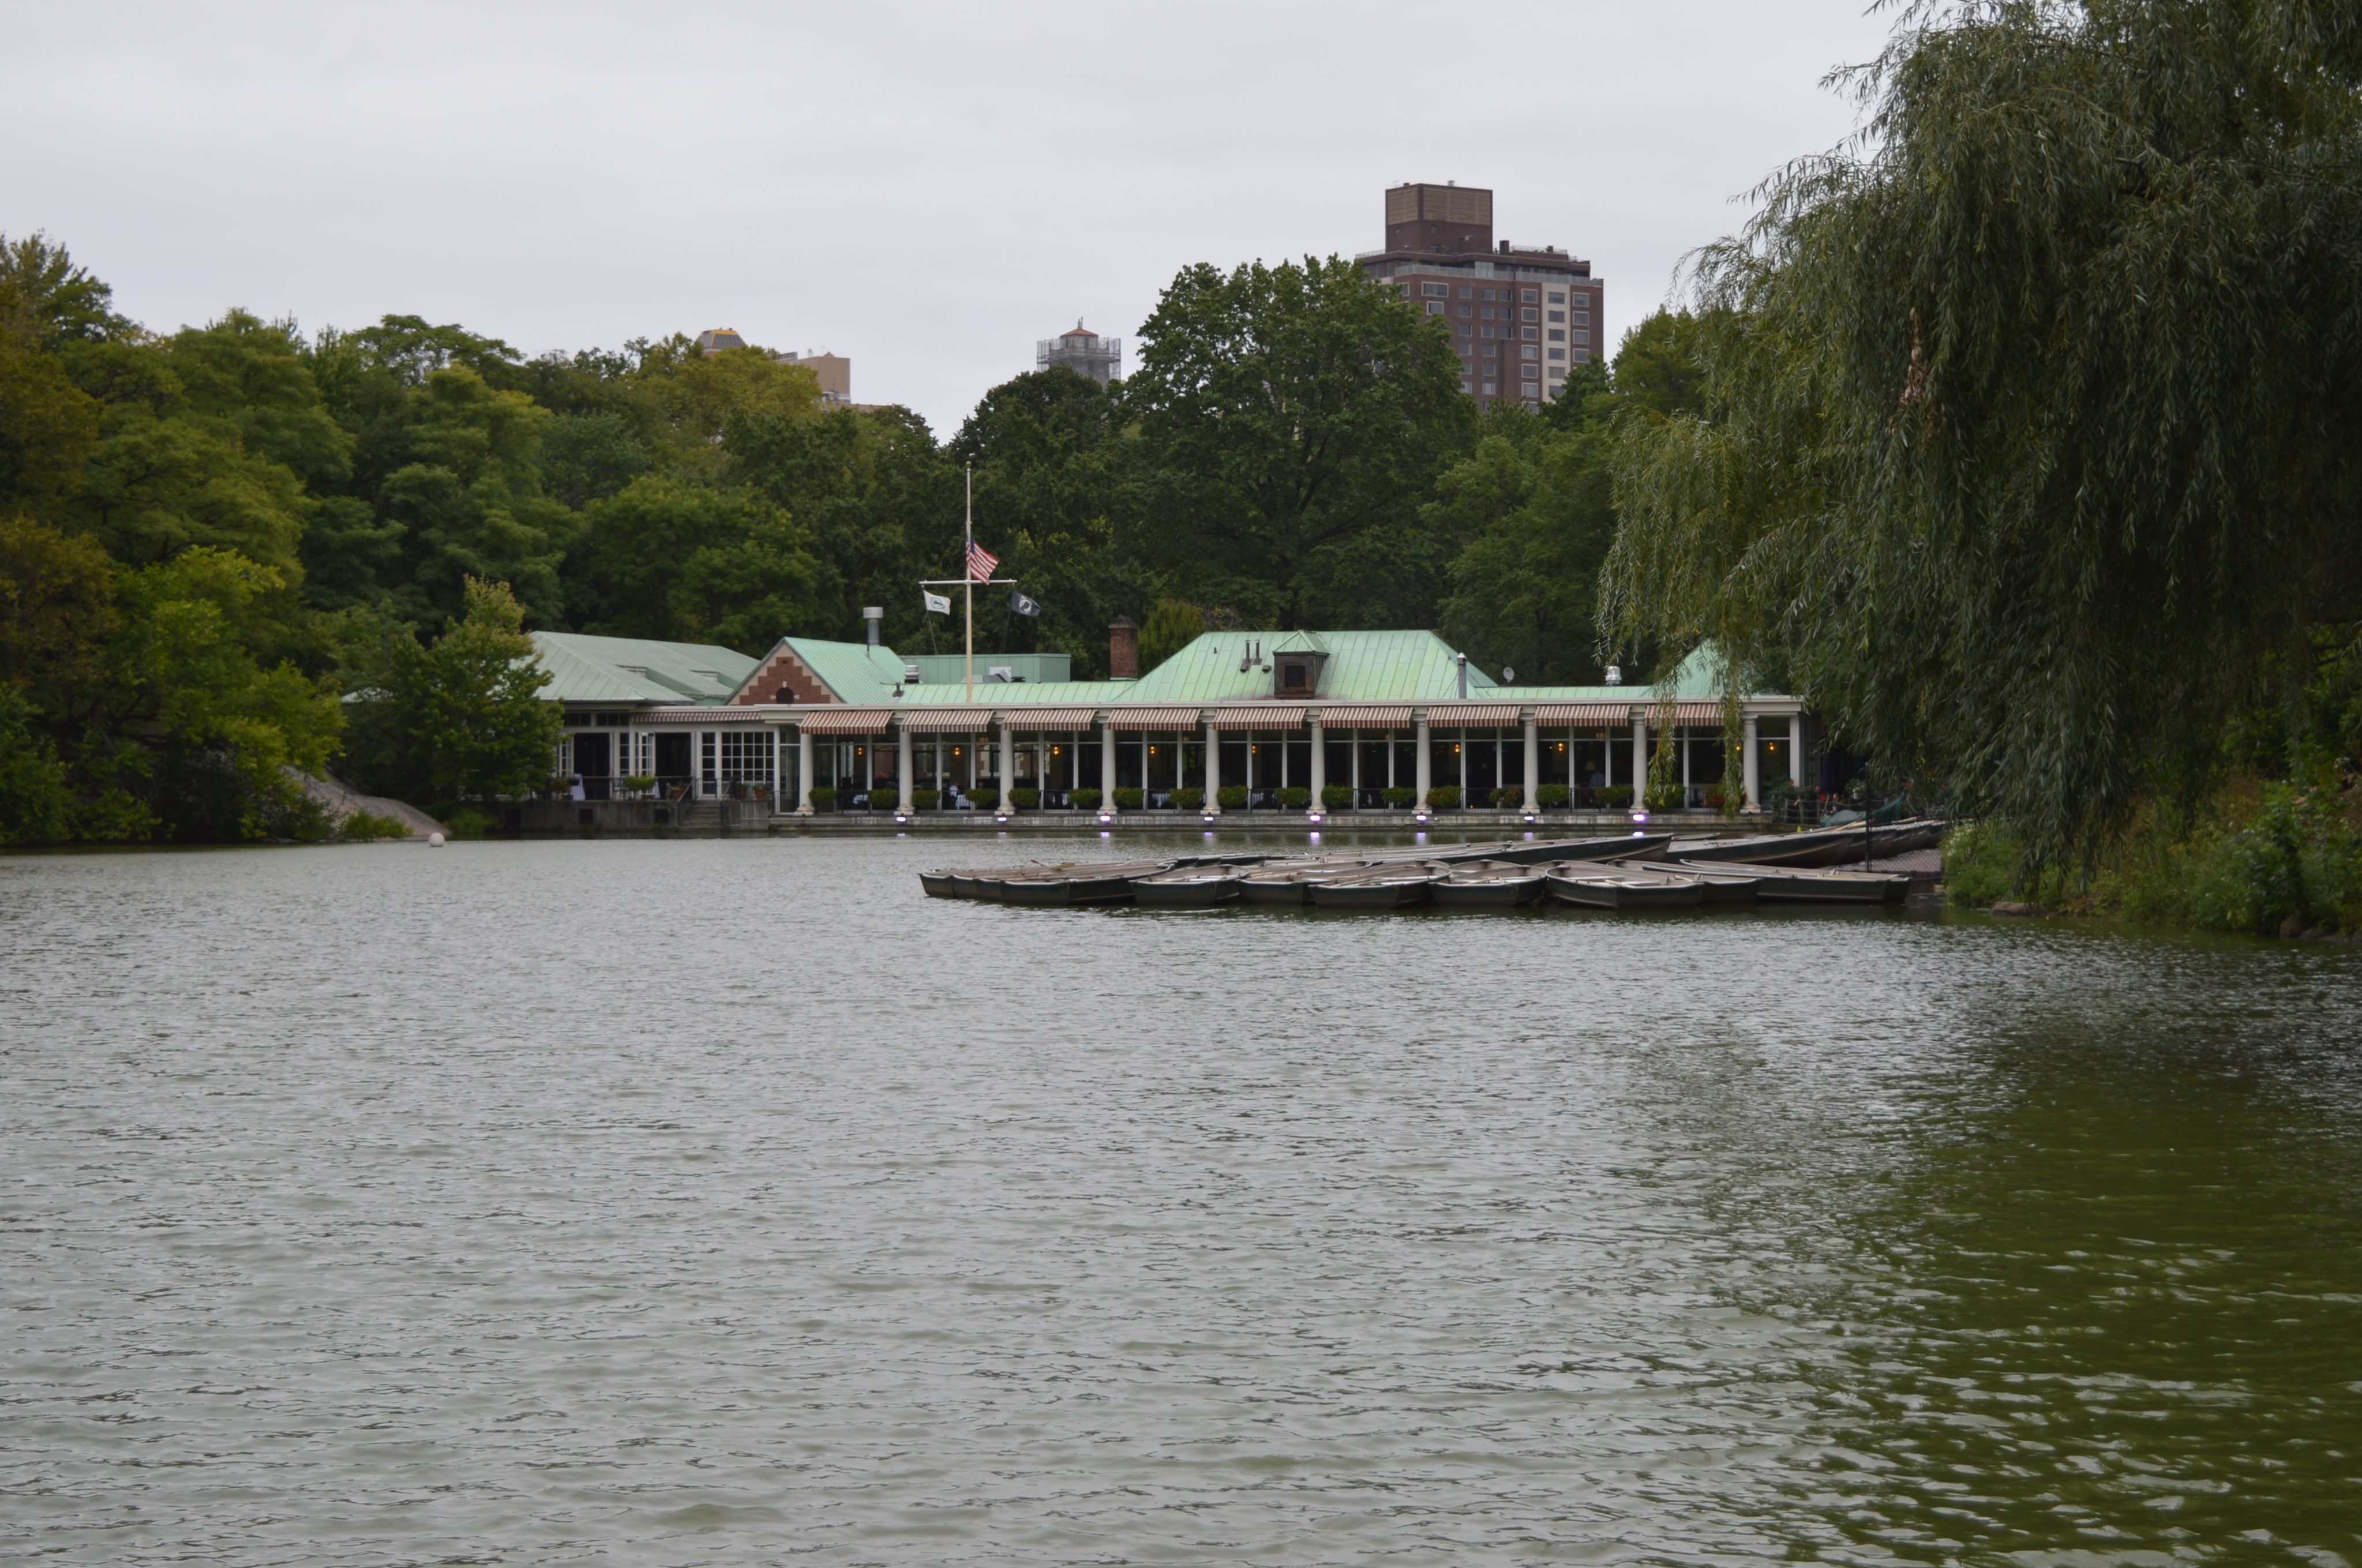 The Boathouse Central Park